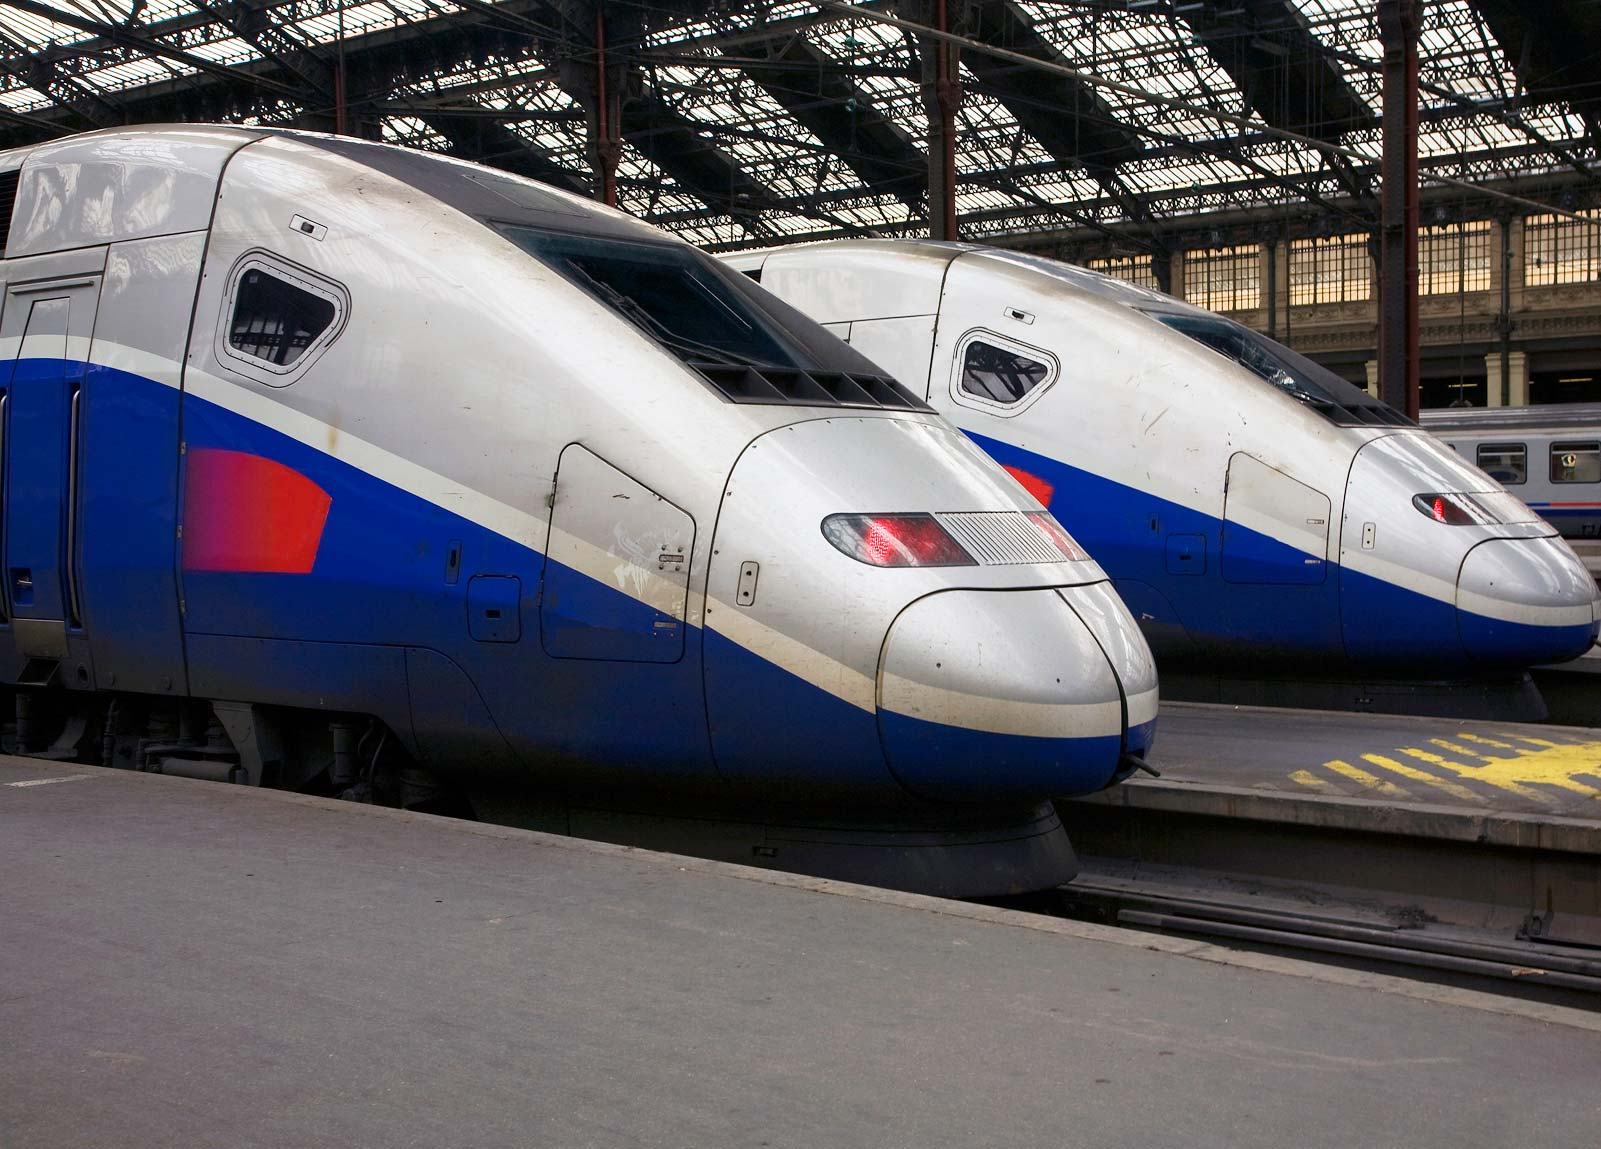 France Rail Travel